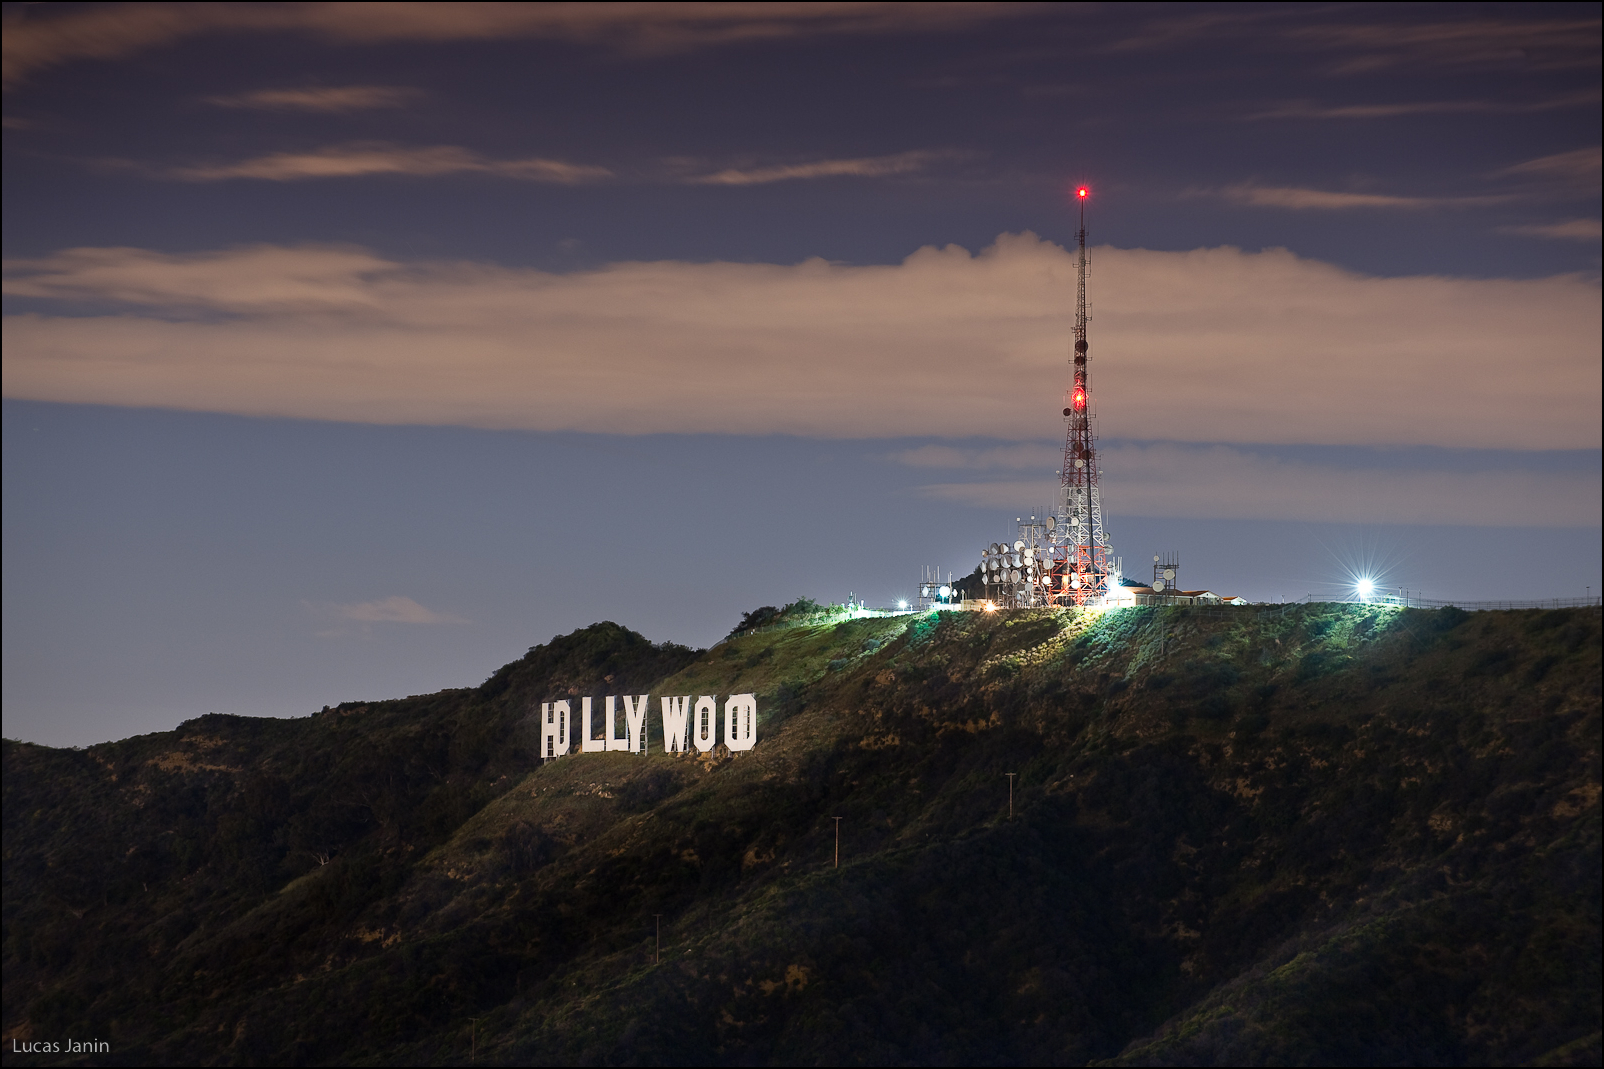 Hollywood Sign By Night wallpaper by BillGate RevelWallpapersnet 1604x1069